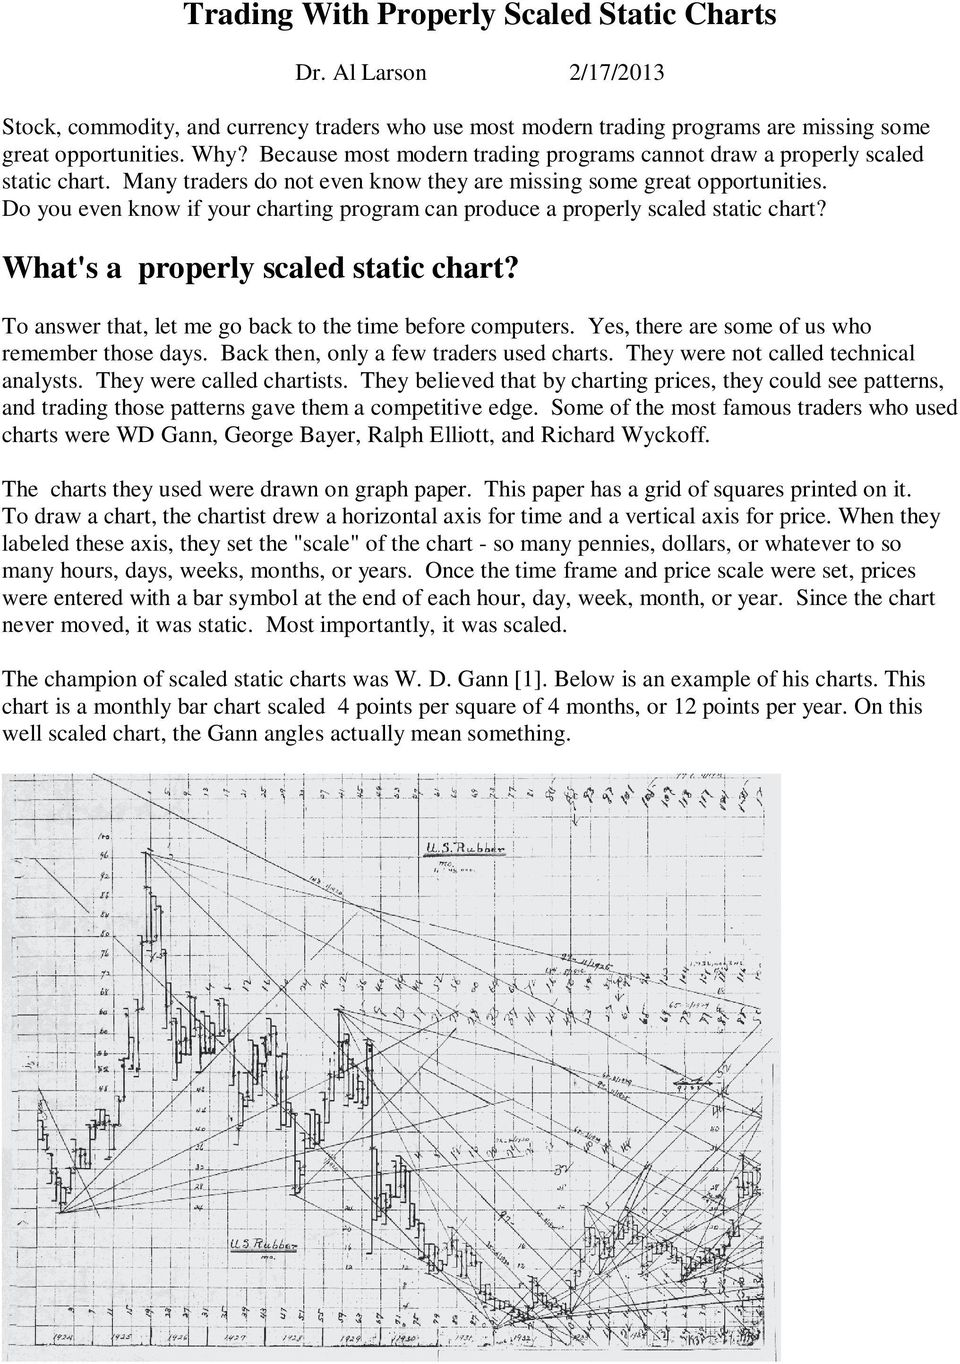 Trading With Properly Scaled Static Charts - PDF